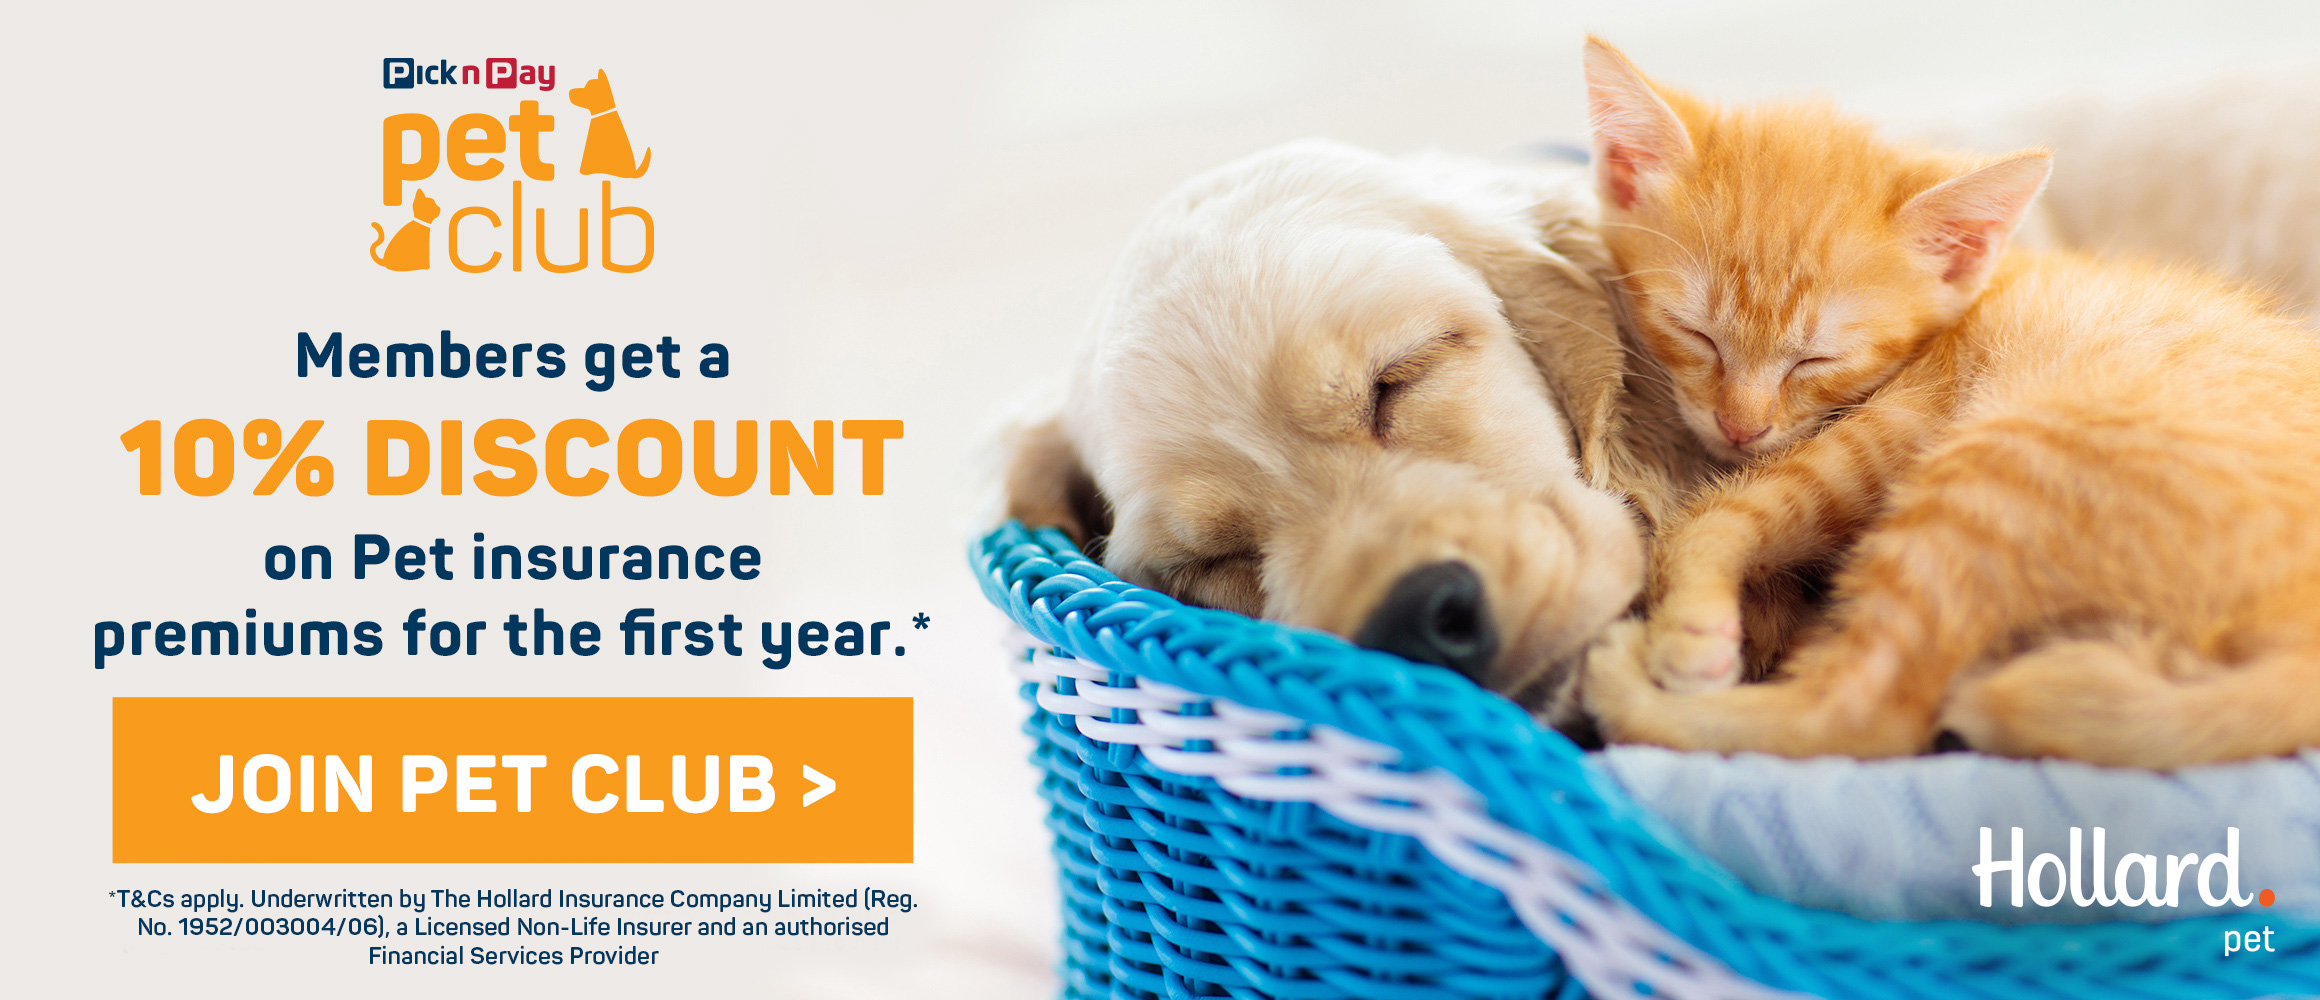 Members get a 10% discount on Pet insurance premiums for the first year. Join pet club